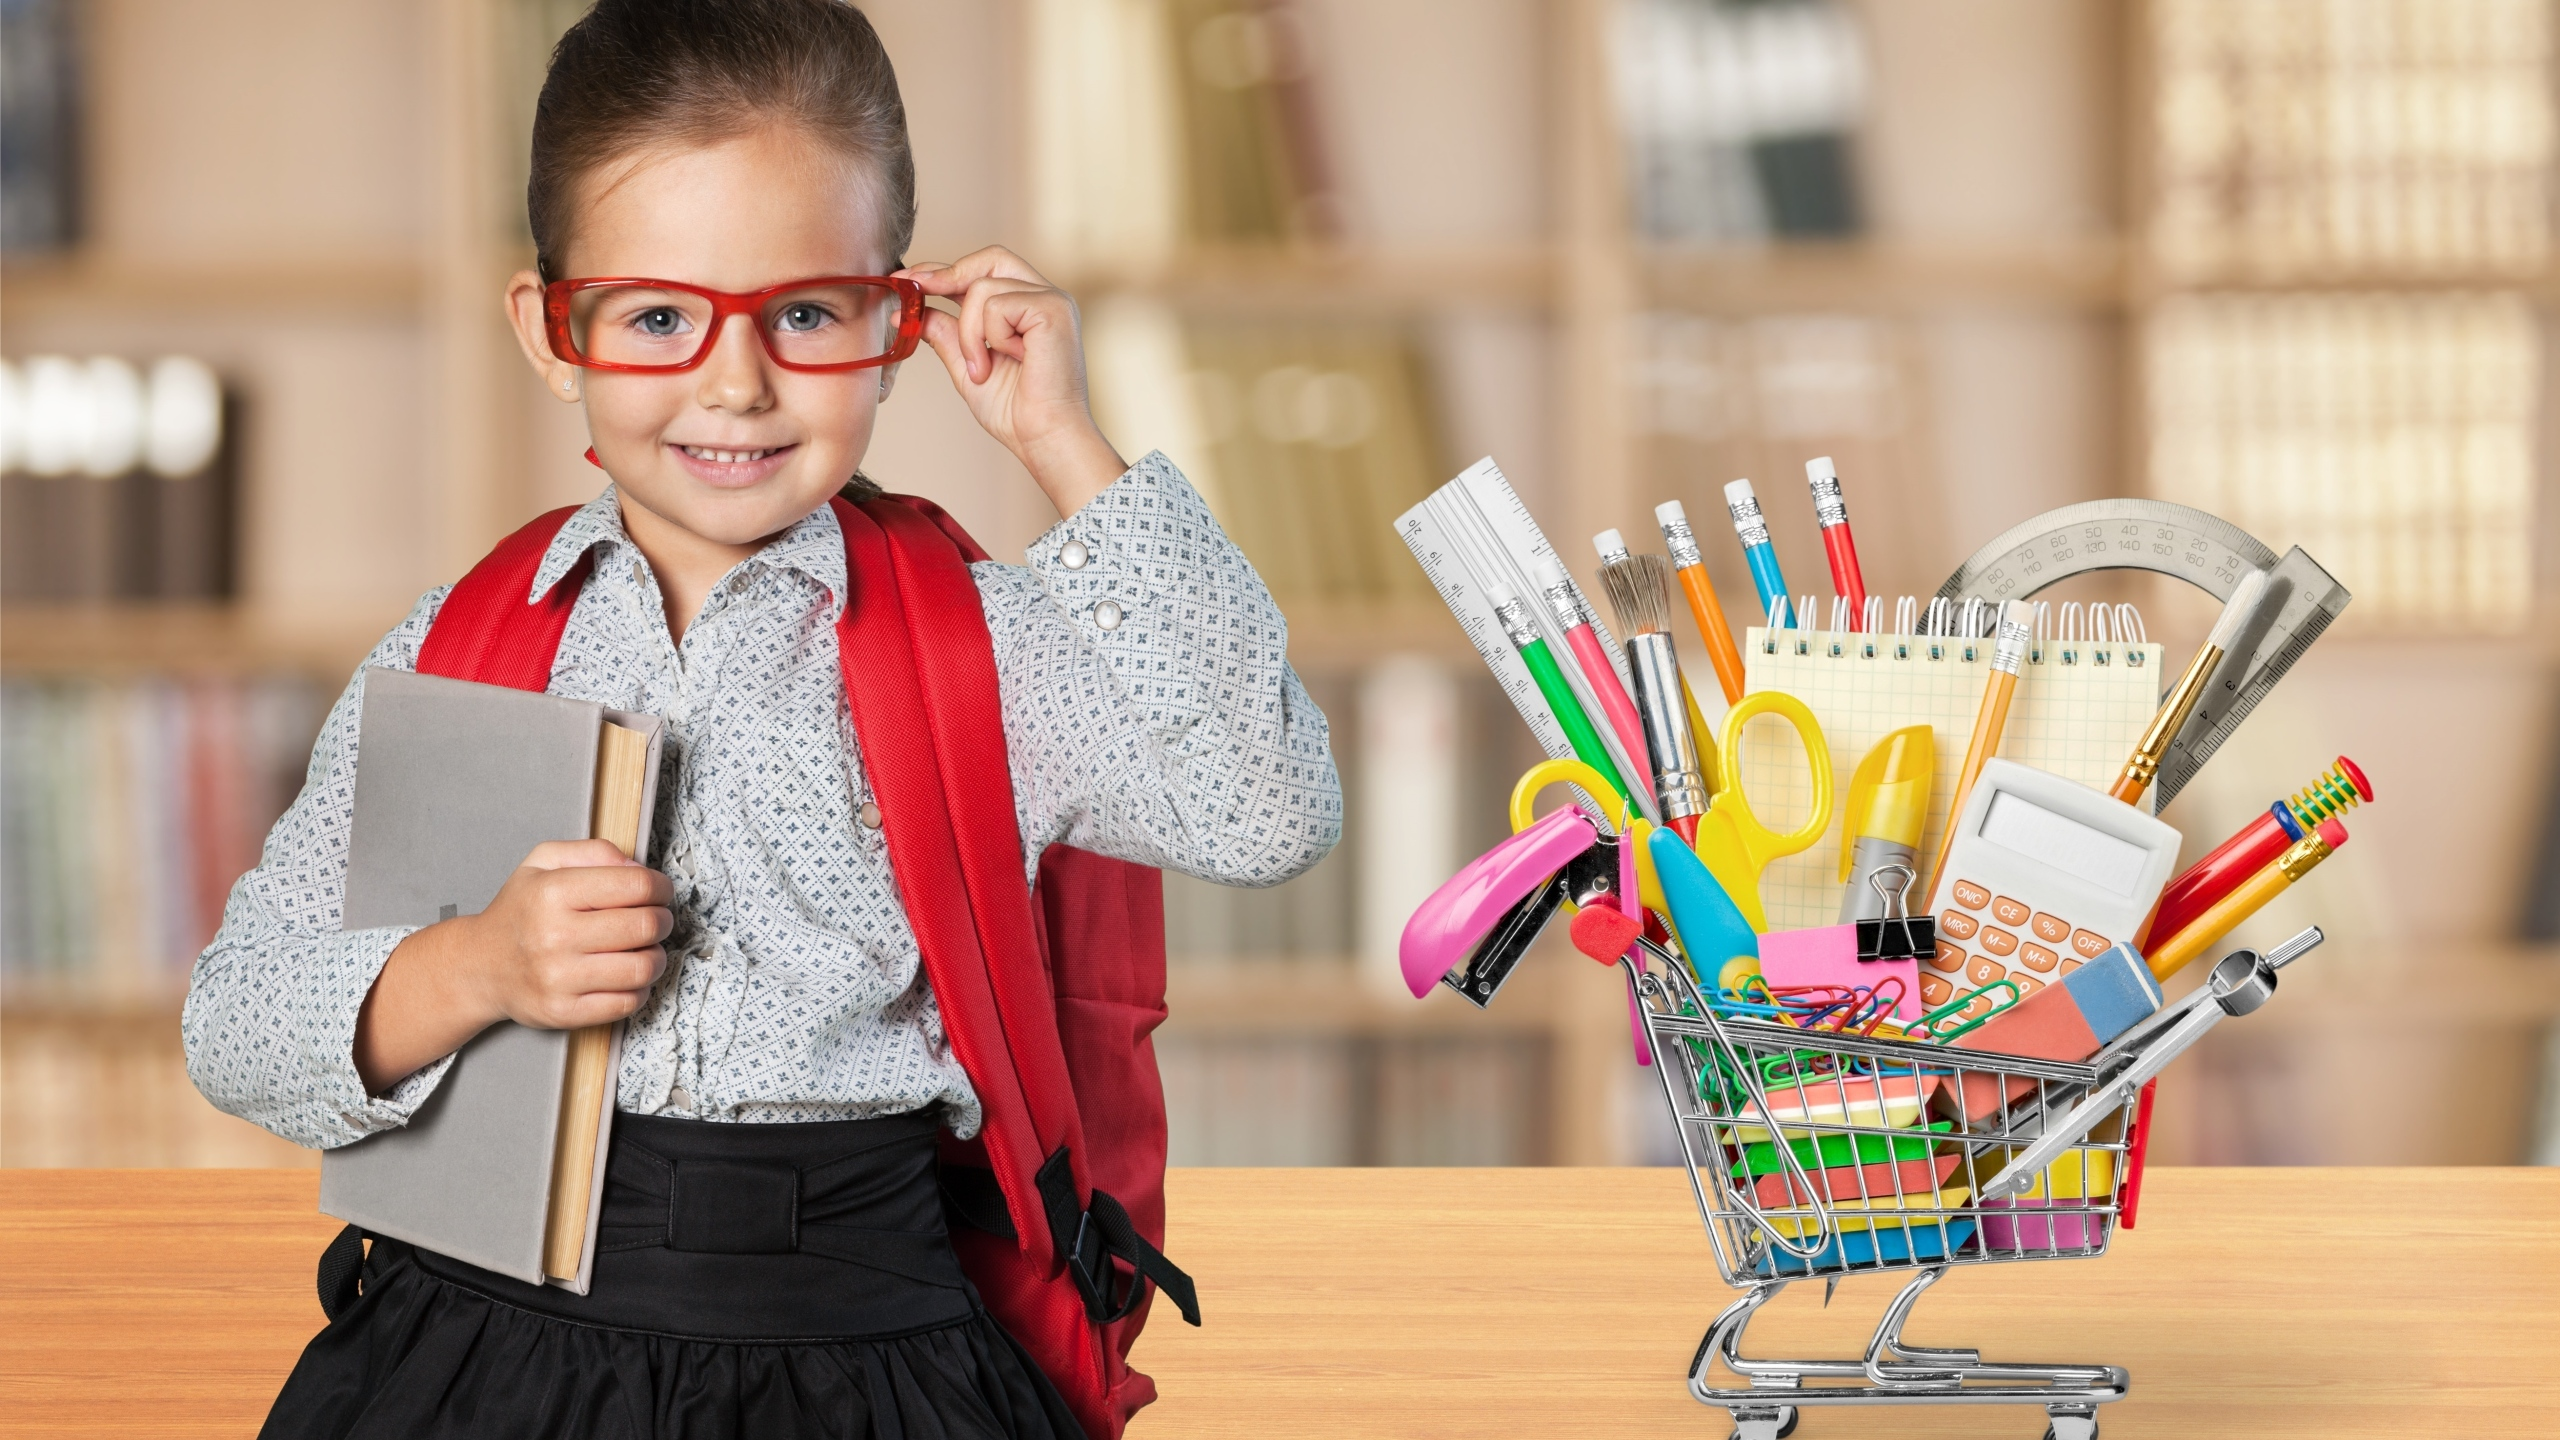 back to school shopping kid school supplies shutterstock_291295